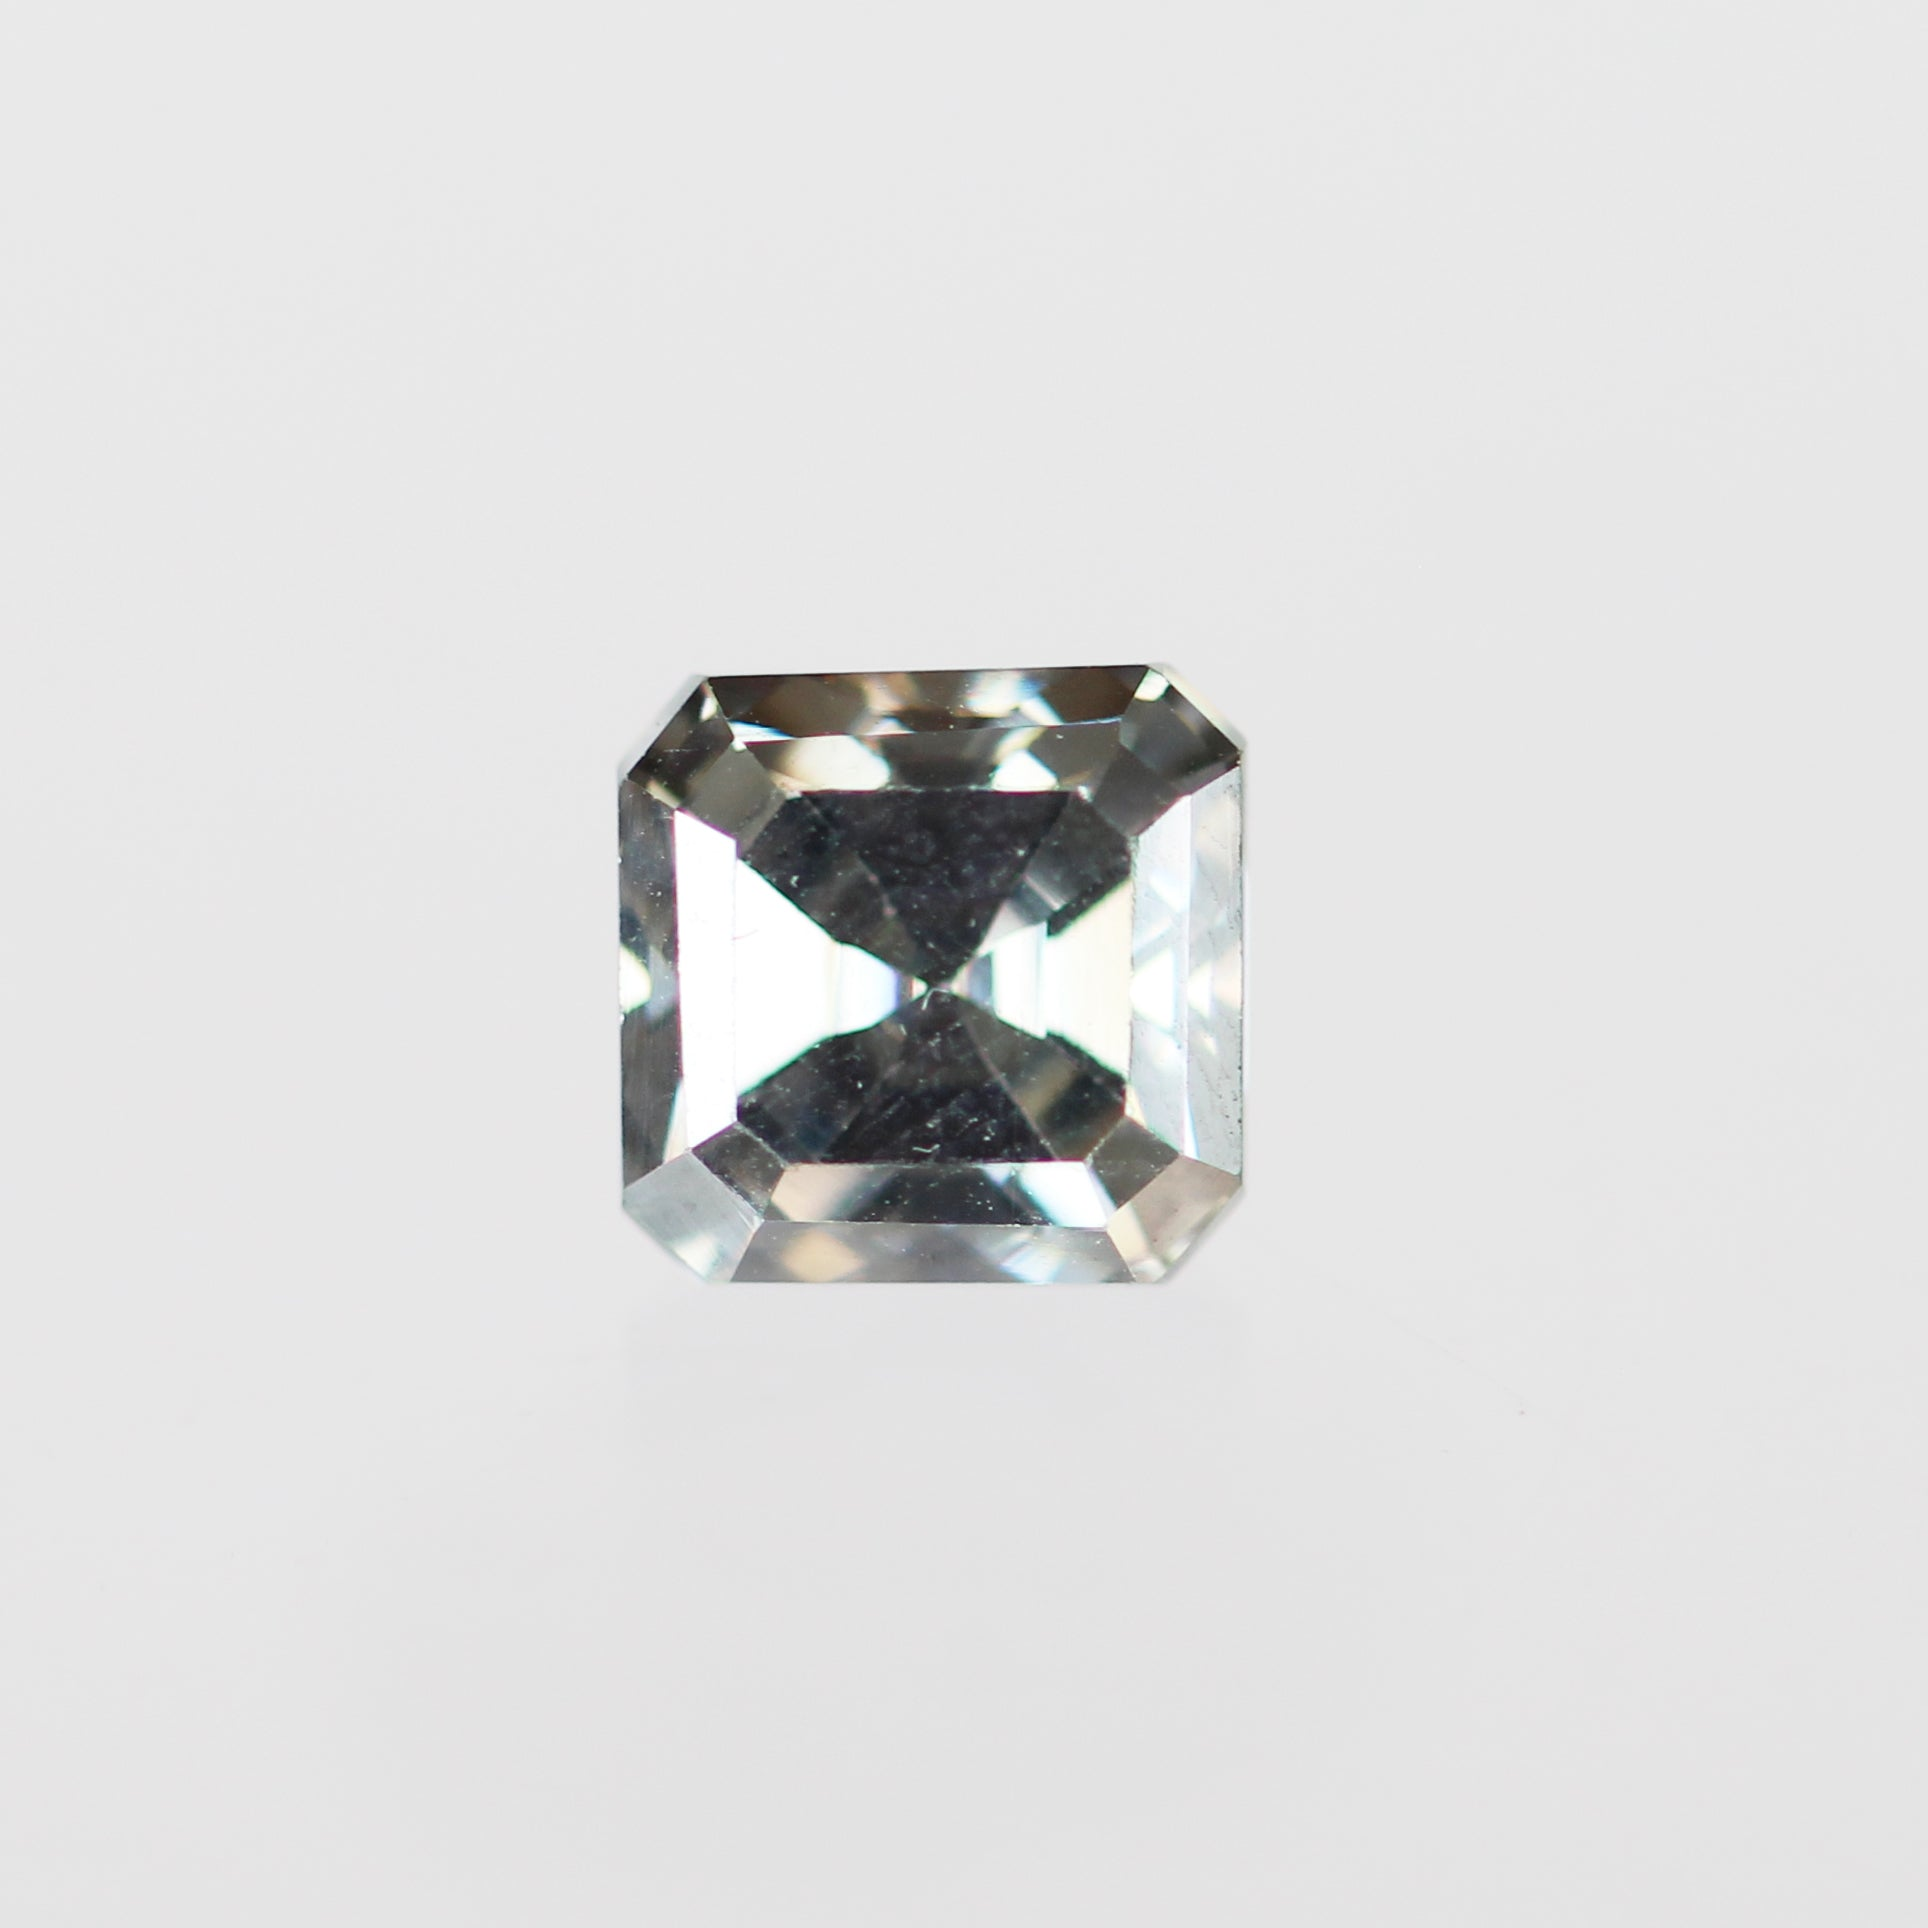 1.64 Carat Asscher Moissanite for Custom Work - Inventory Code ABMOI164 - Midwinter Co. Alternative Bridal Rings and Modern Fine Jewelry